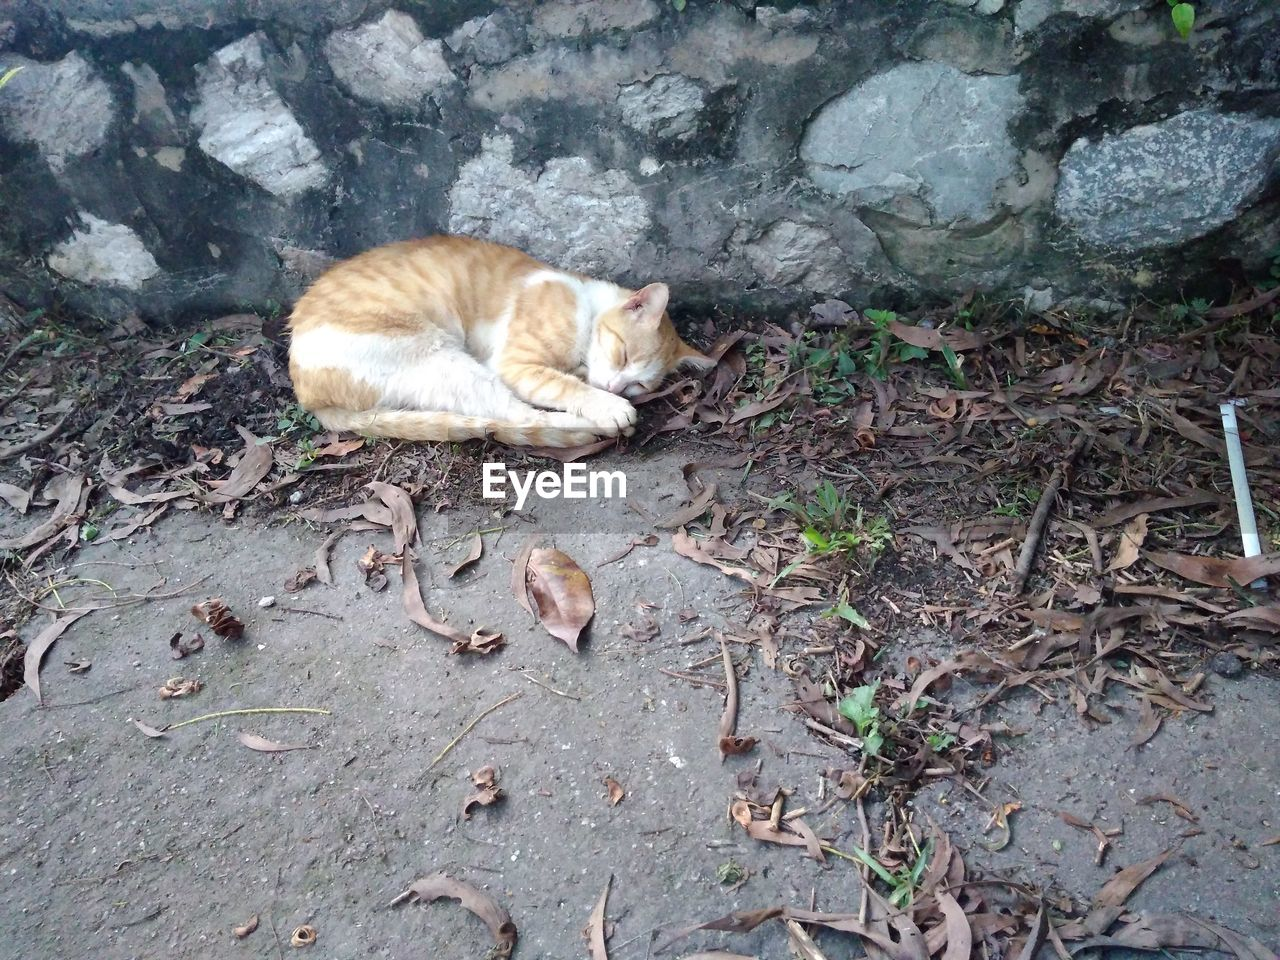 domestic cat, domestic animals, pets, animal themes, relaxation, lying down, mammal, high angle view, one animal, outdoors, leaf, no people, feline, day, ginger cat, nature